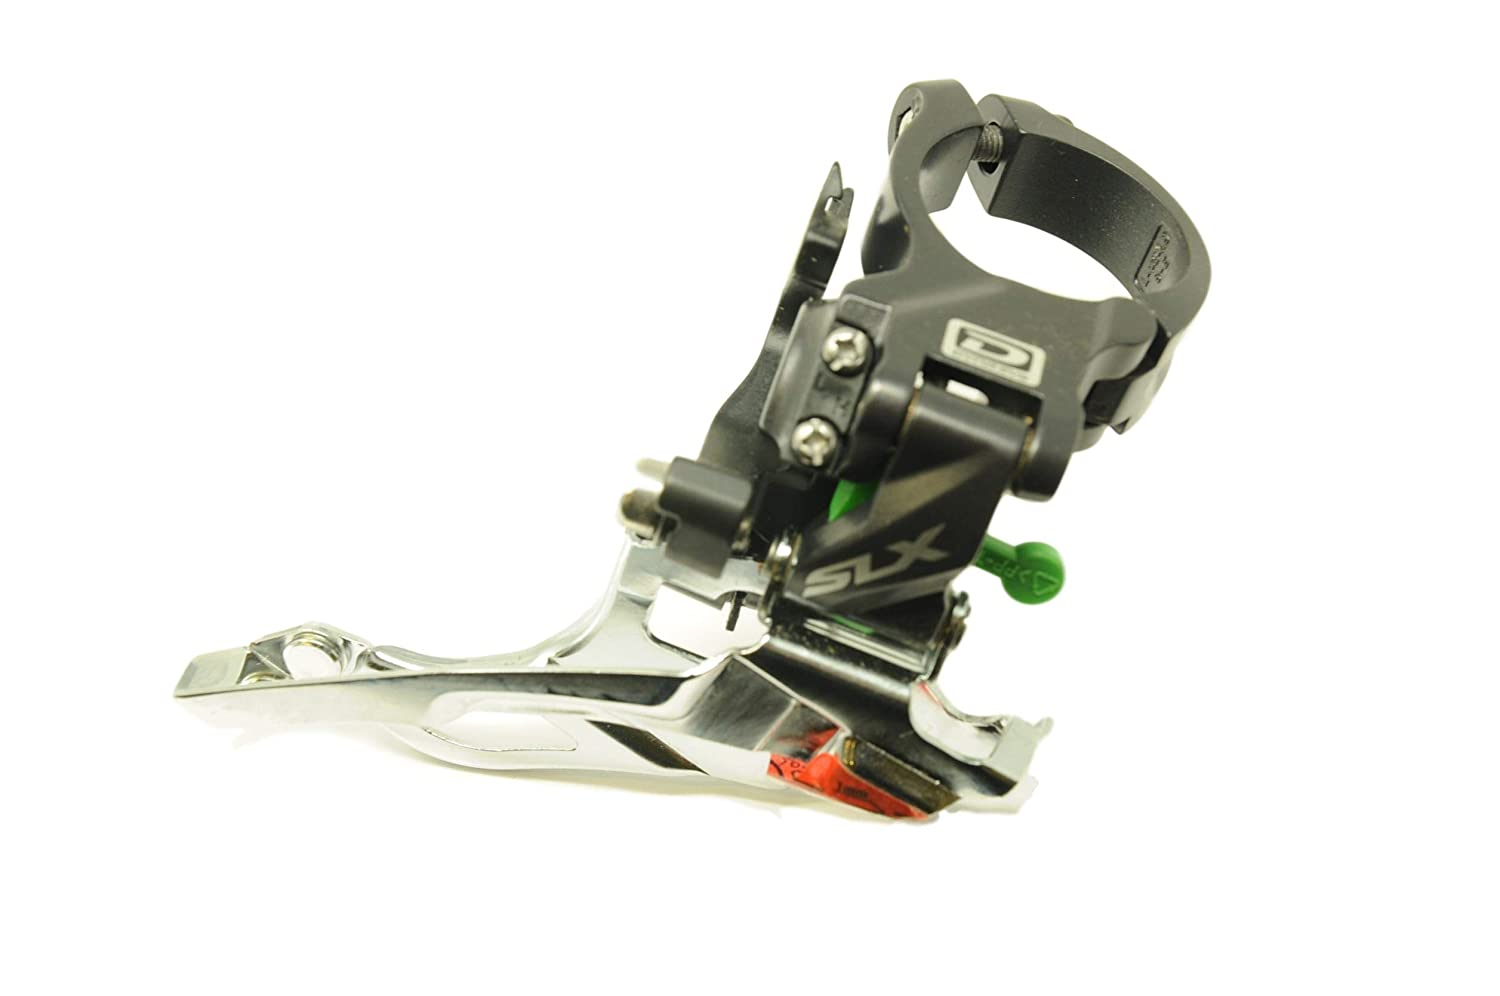 Shimano SLX FD-M661-10 Dyna-Sys 10 Speed 34.9mm Front Derailleur Black 31.8mm